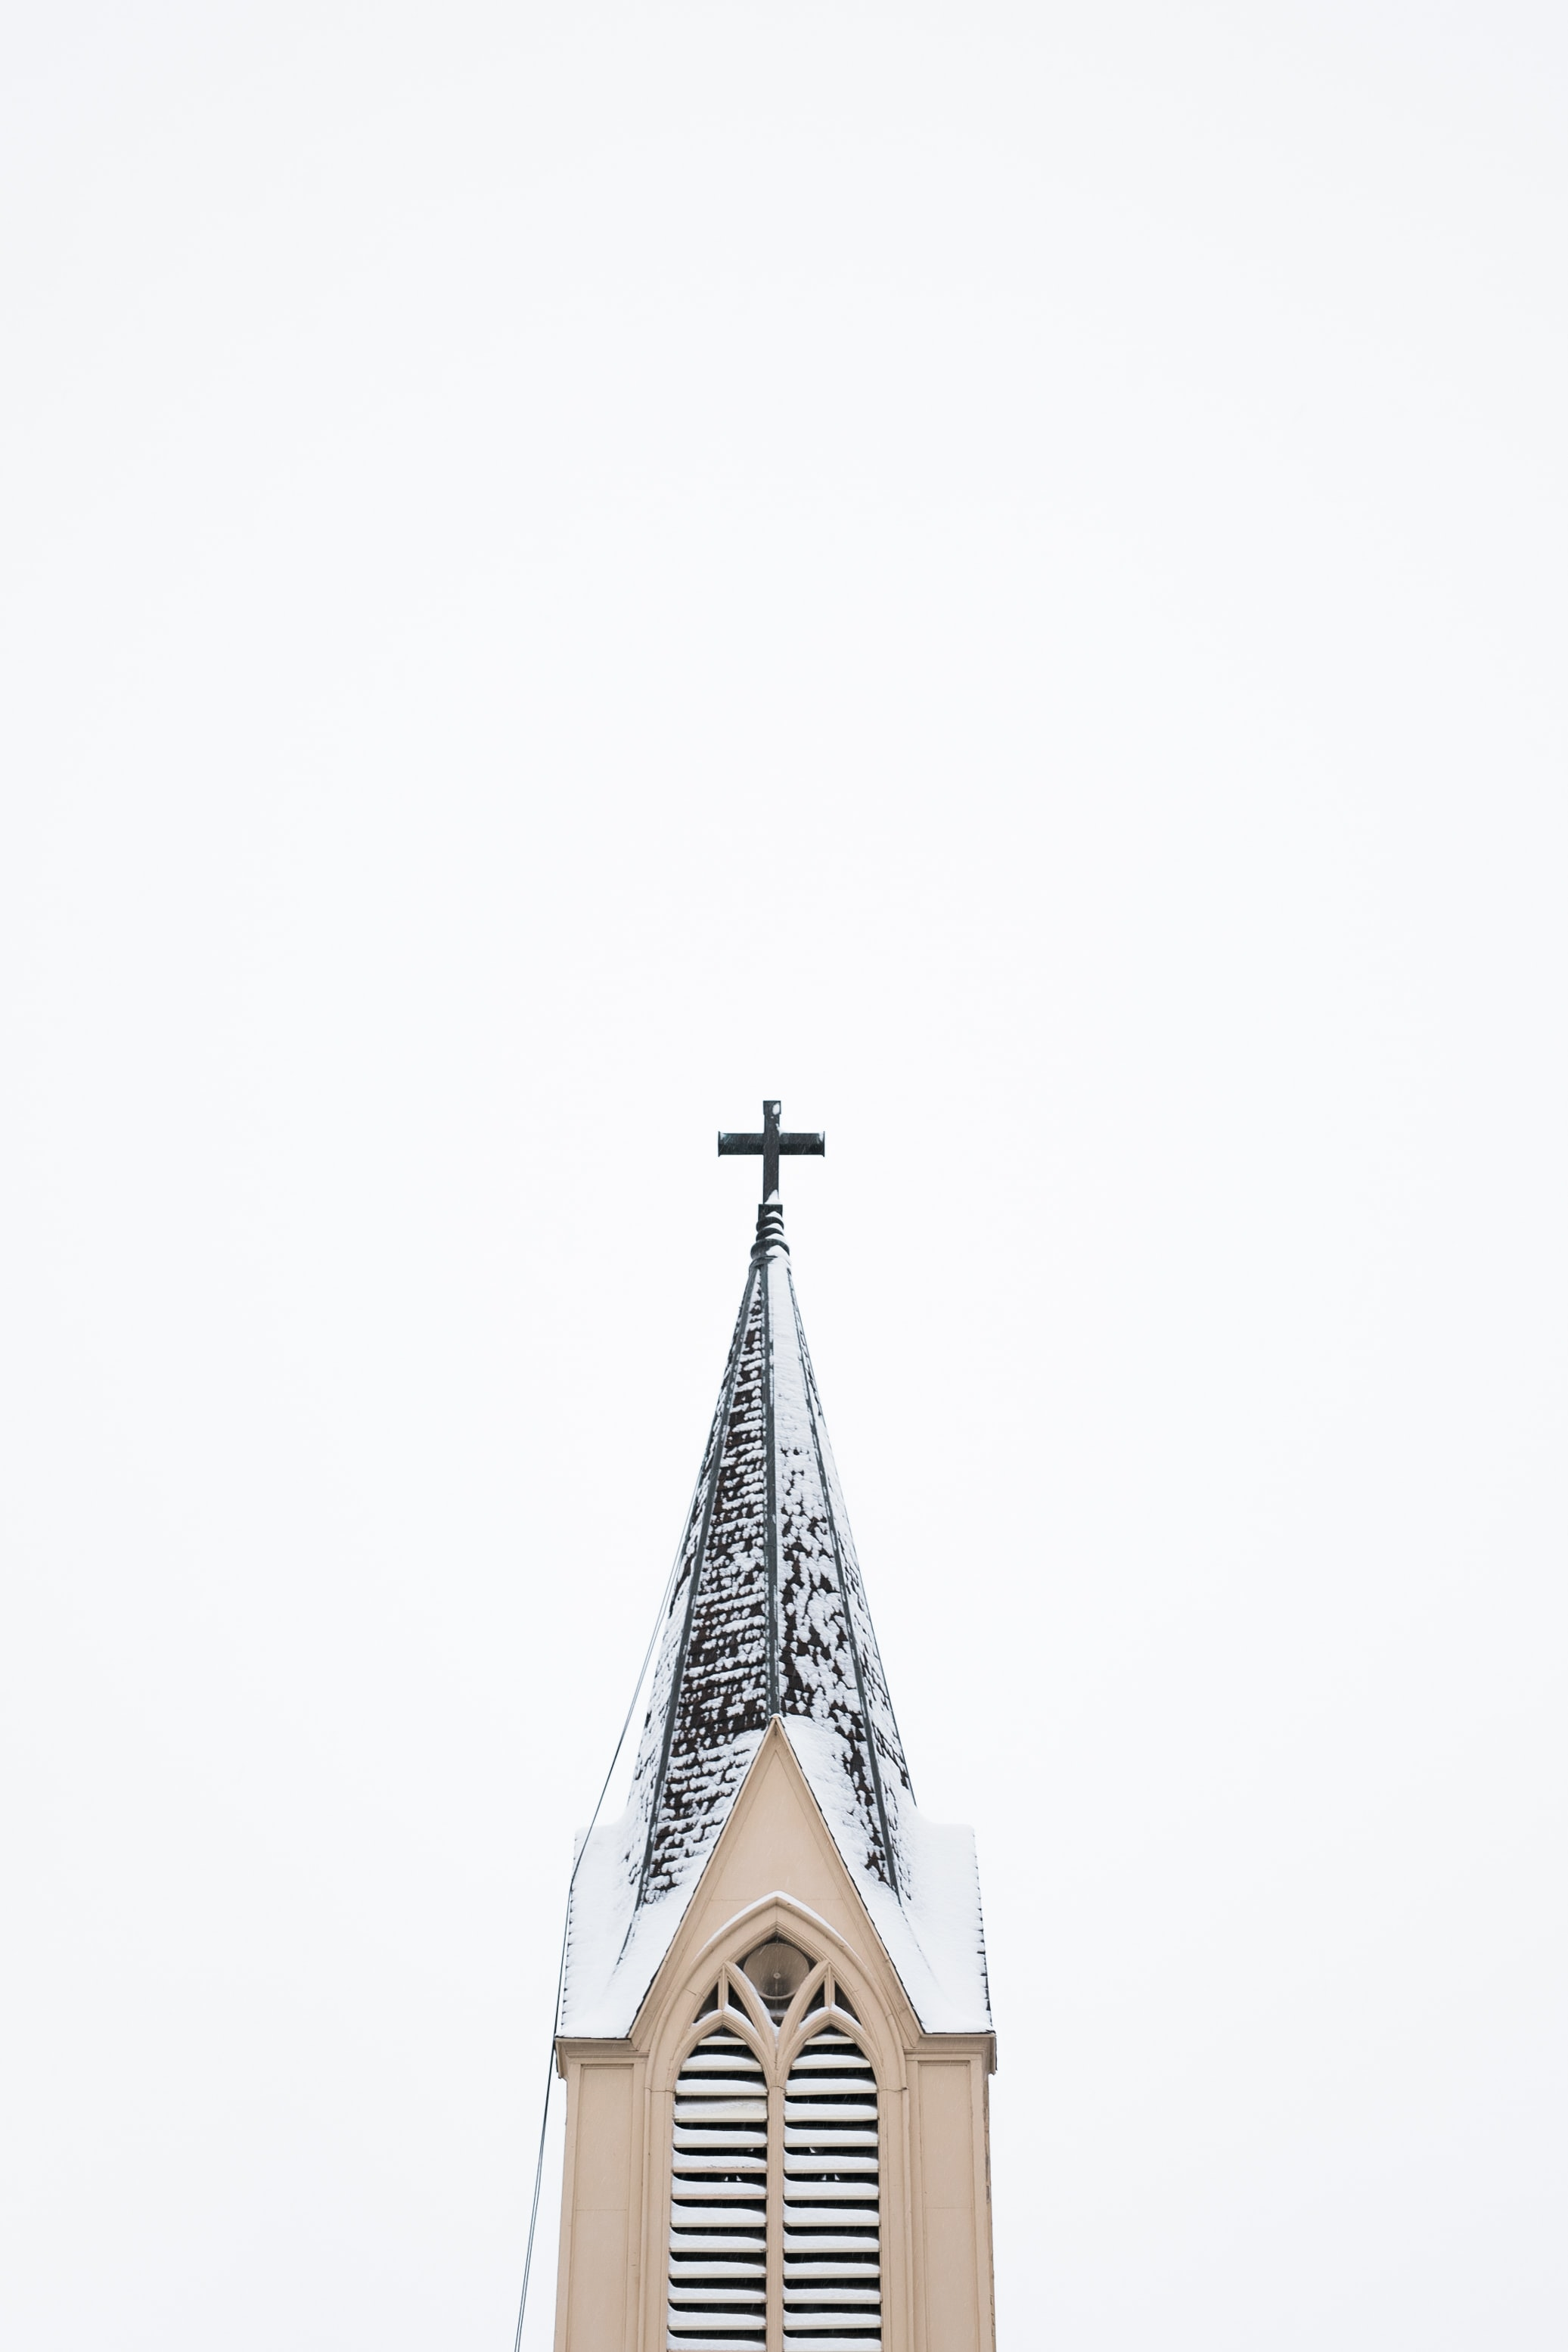 beige and white church tower with cross